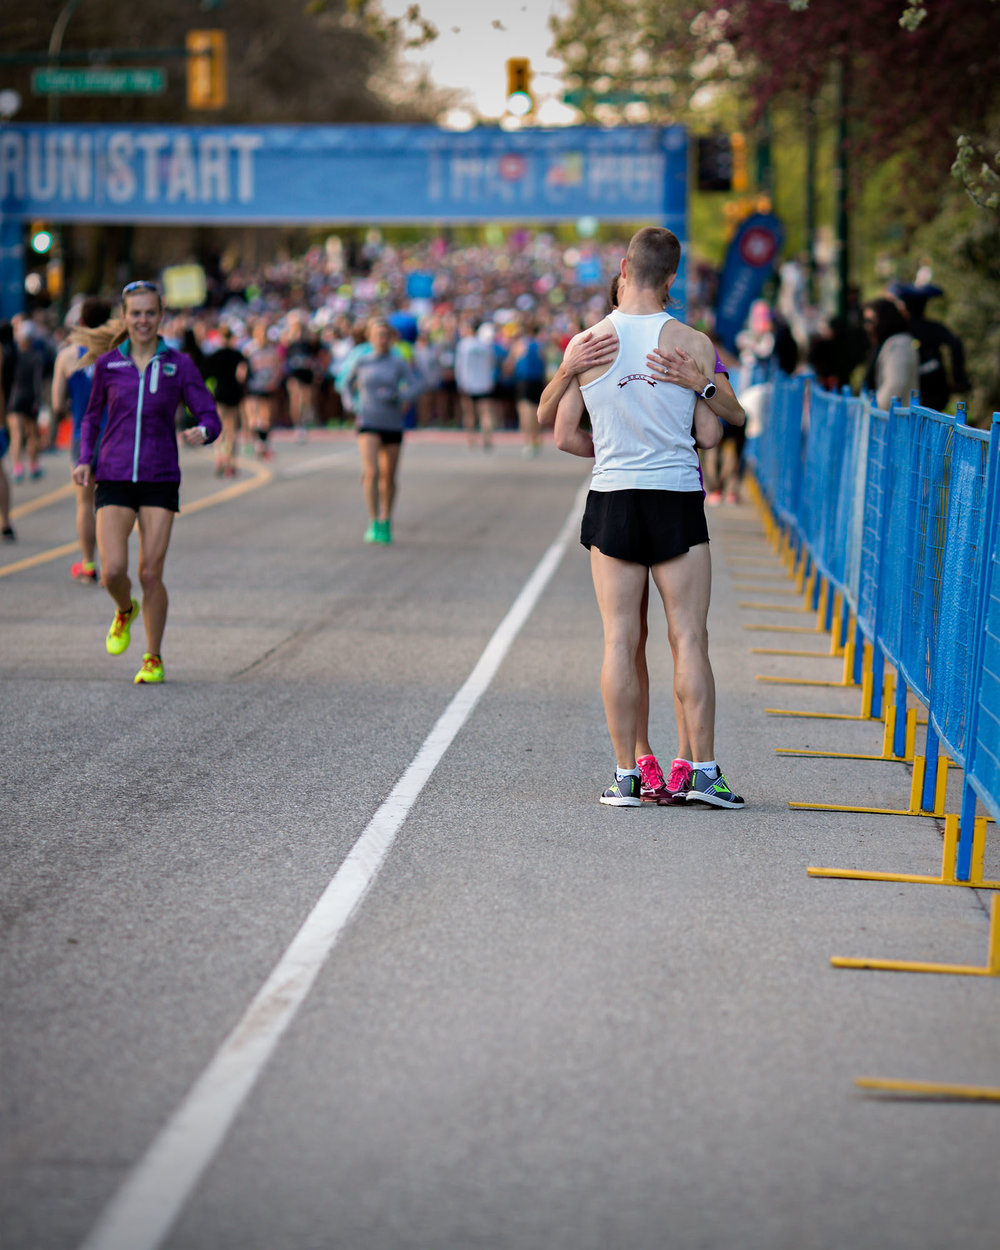 """There really is no feeling like the starting corrals of a race. I've spent my fair share of time in one as a photographer, but never as a runner. That will change at some point this year given my new found love for putting one foot in front of the other at a sub 4:30/KM pace...and getting faster with each training run. . I spot  @mattsetlack  warming up with only 8:07 left before this party at the  @bmovanmarathon  get's started. Matt is an elite runner. He is coming off a PB at the  @vancouversunrun  finishing outside the top 10. Just over 7 minutes before the gun, I see  @emilysetlack  coming over to Matt for a quick pre-race kiss before they both head back to opposite sides of the course to toe the start line. Emily coming off a PB and 4th female finish at the same  @vancouversunrun , they are both poised to have great races. And do they ever. The couple absolutely crushes their half marathon PB's by 2:15 and 2:00 with Emily finishing 2nd for females, and Matt 6th overall."" - Jody Bailey  Photo by: Jody Bailey (@run_photographs, jodybailey.ca)"